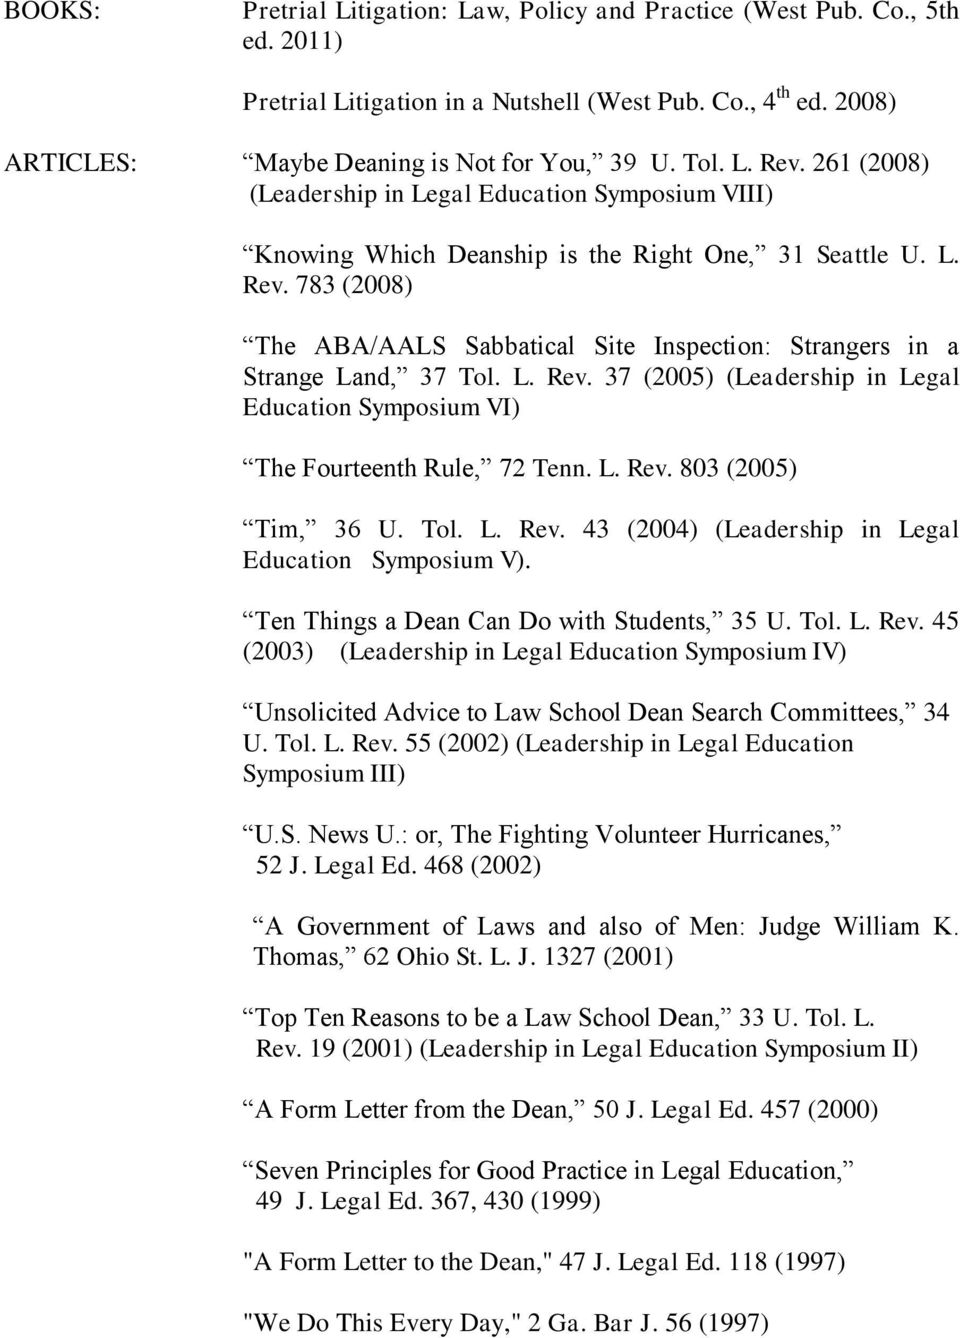 L. Rev. 37 (2005) (Leadership in Legal Education Symposium VI) The Fourteenth Rule, 72 Tenn. L. Rev. 803 (2005) Tim, 36 U. Tol. L. Rev. 43 (2004) (Leadership in Legal Education Symposium V).